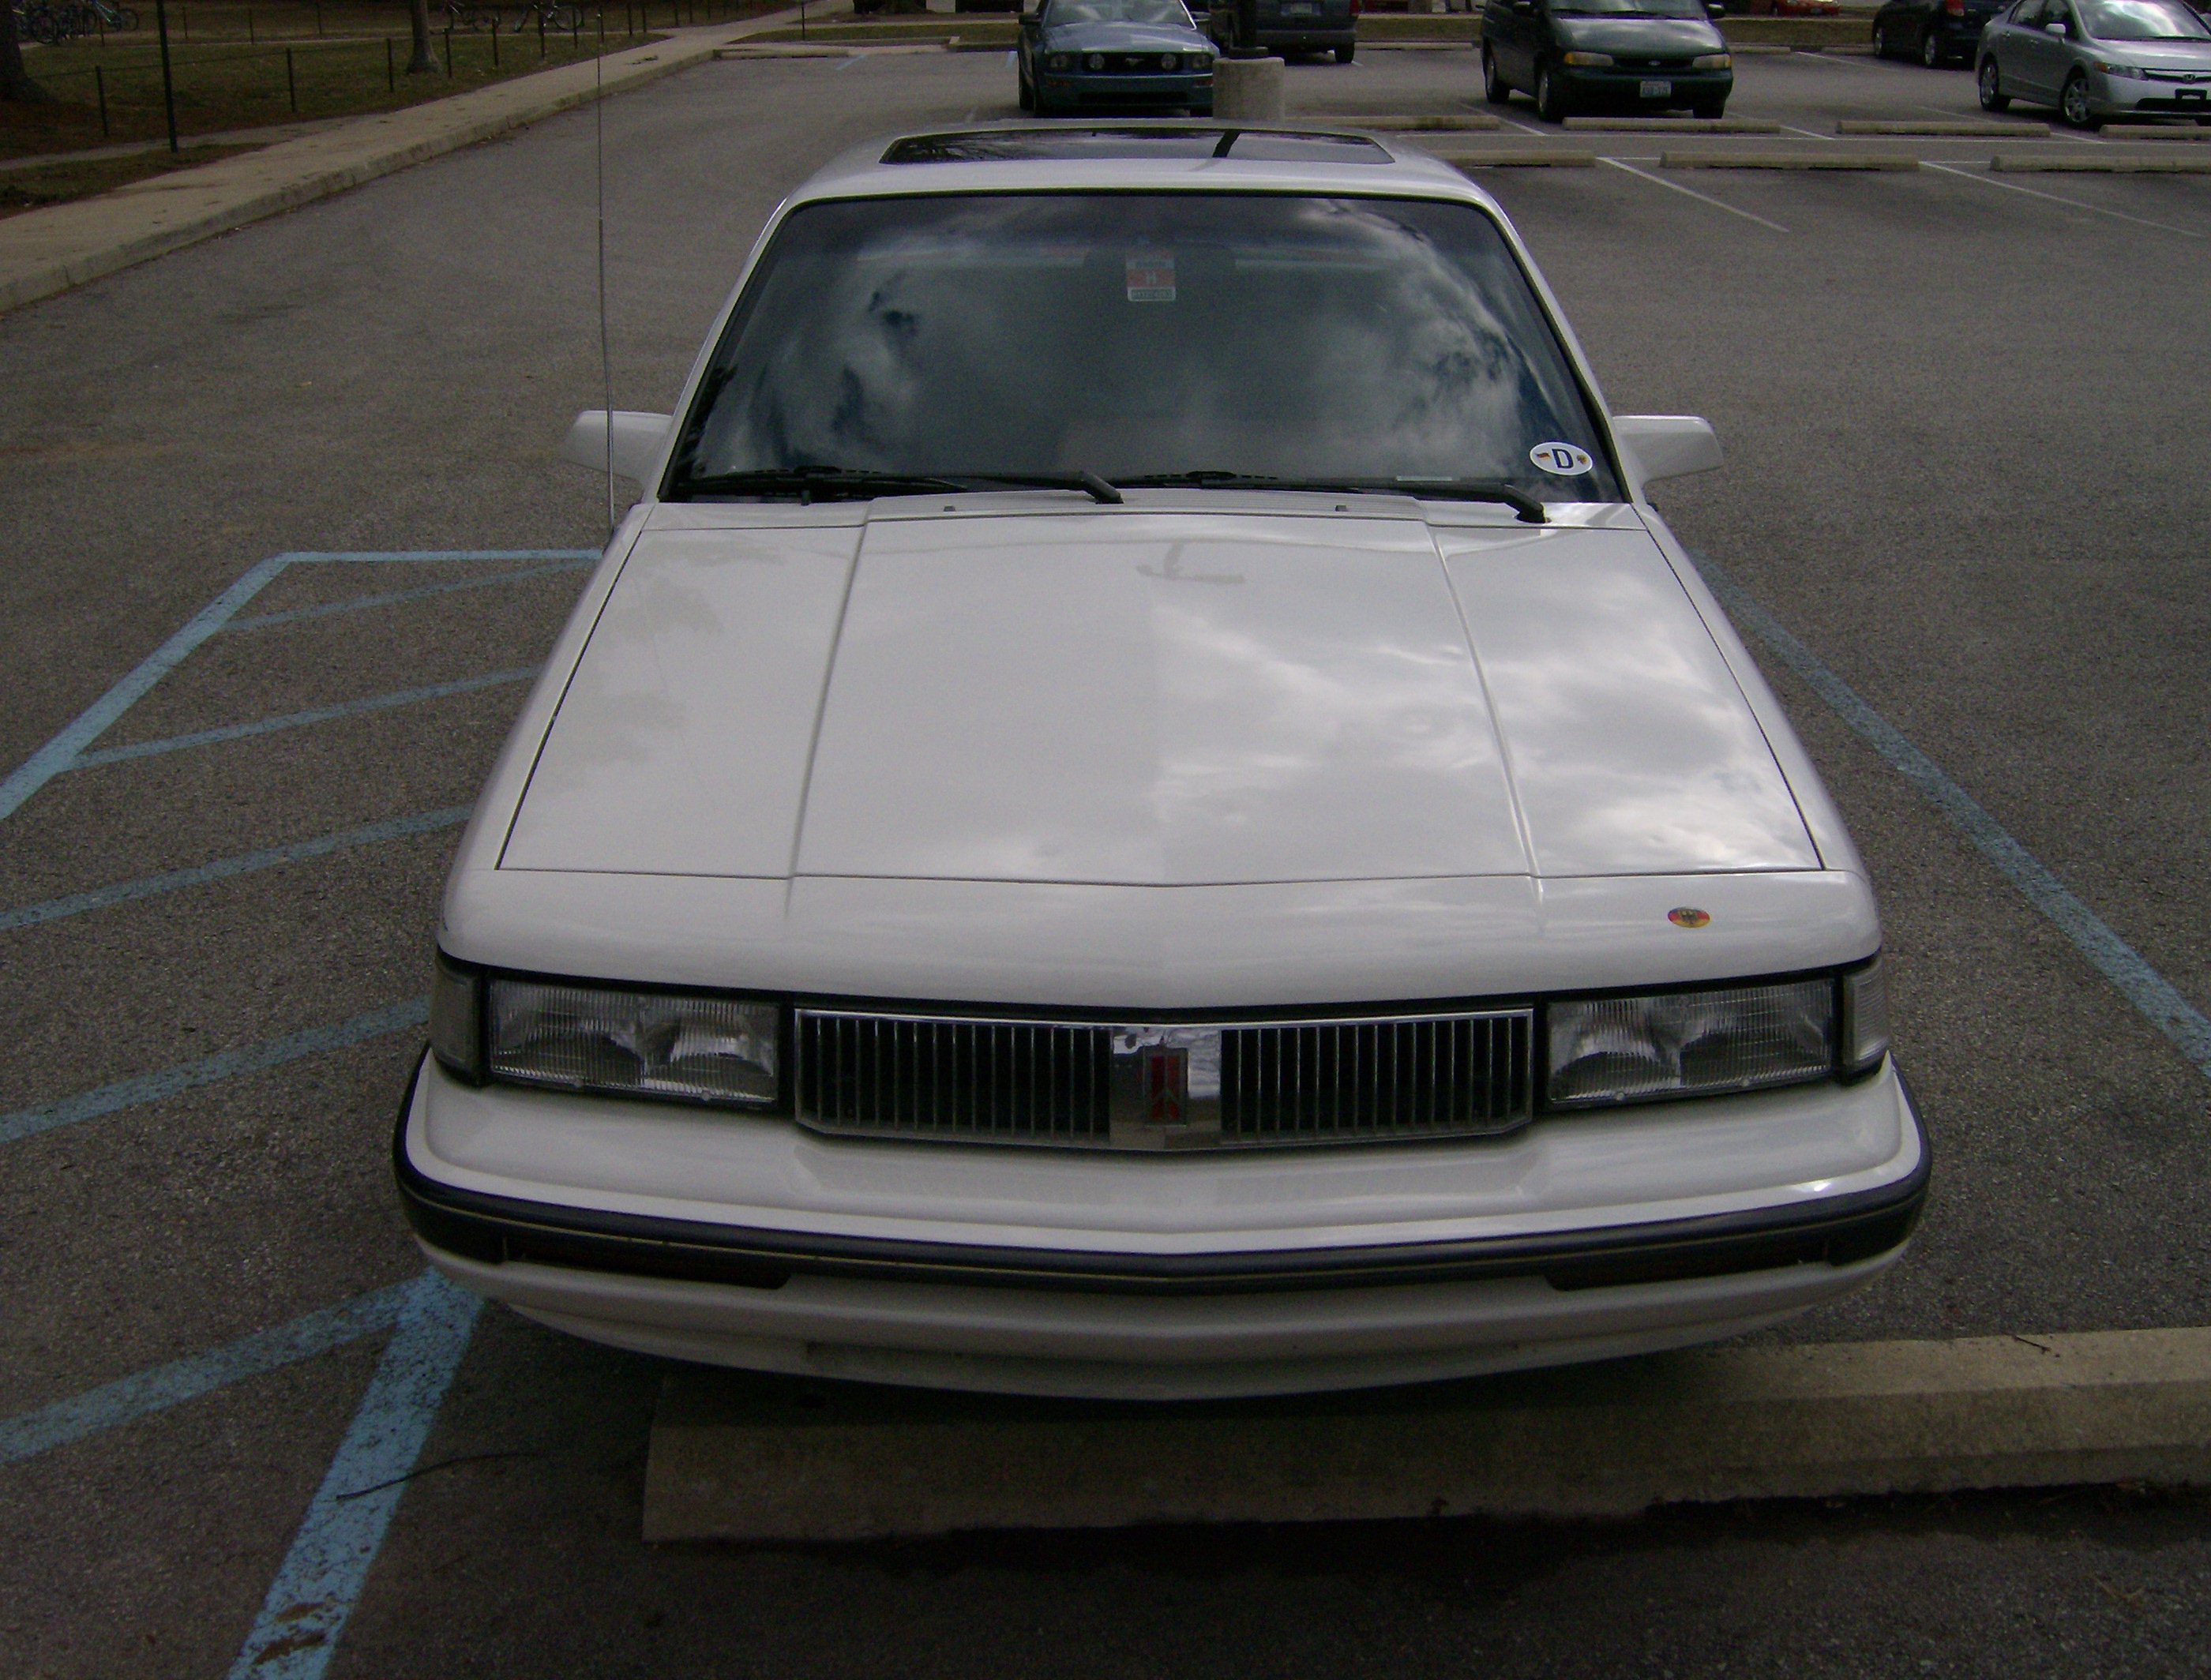 File:Front 1990 Oldsmobile Cutlass Ciera.jpg - Wikimedia Commons